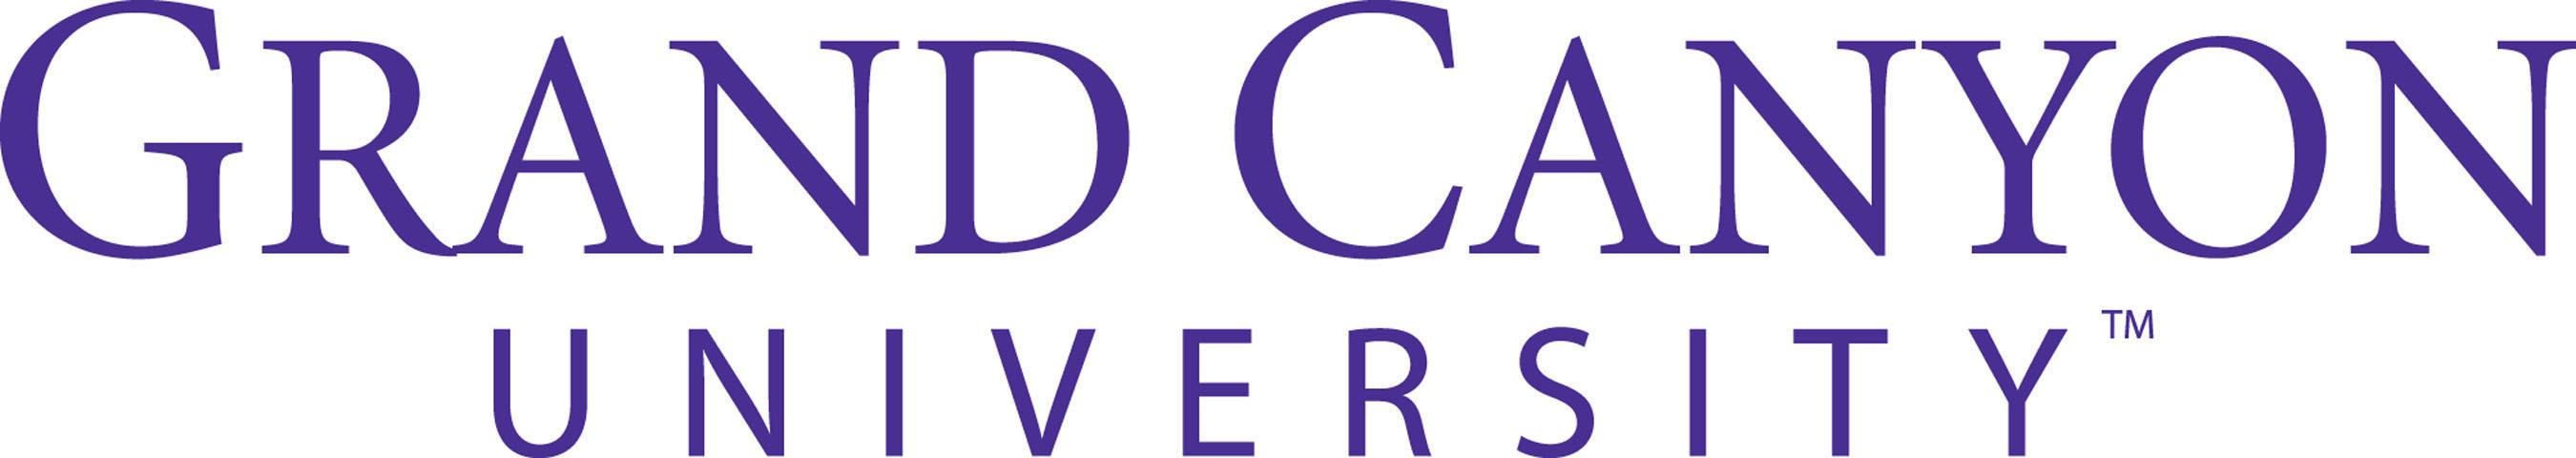 Grand Canyon University To Launch Hospitality Management Program, Turn Nearby Hotel Into A Teaching Laboratory For Students